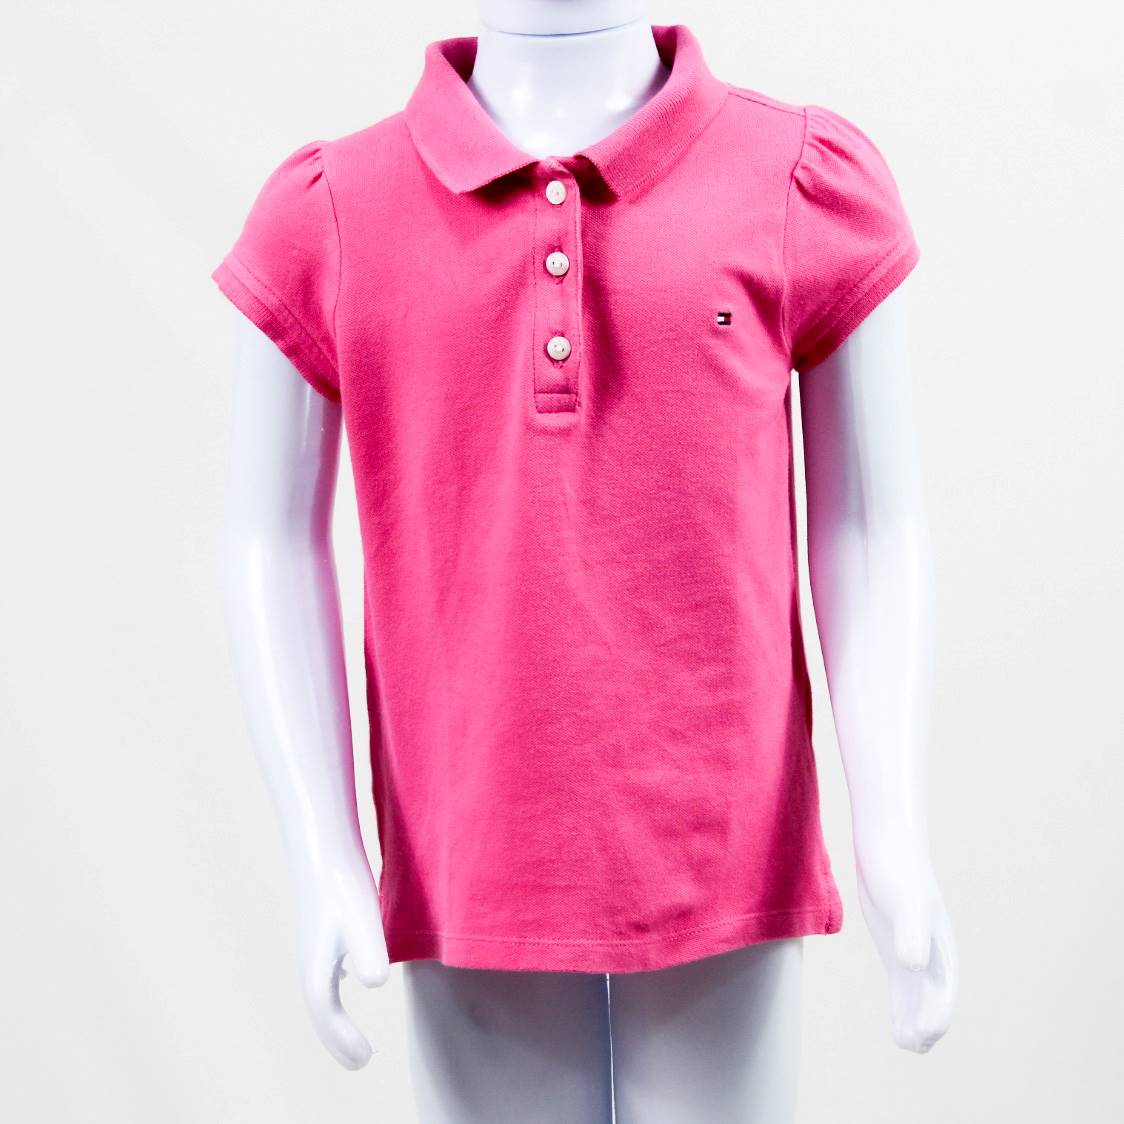 TOMMY HILFIGER - CAMISA POLO PINK